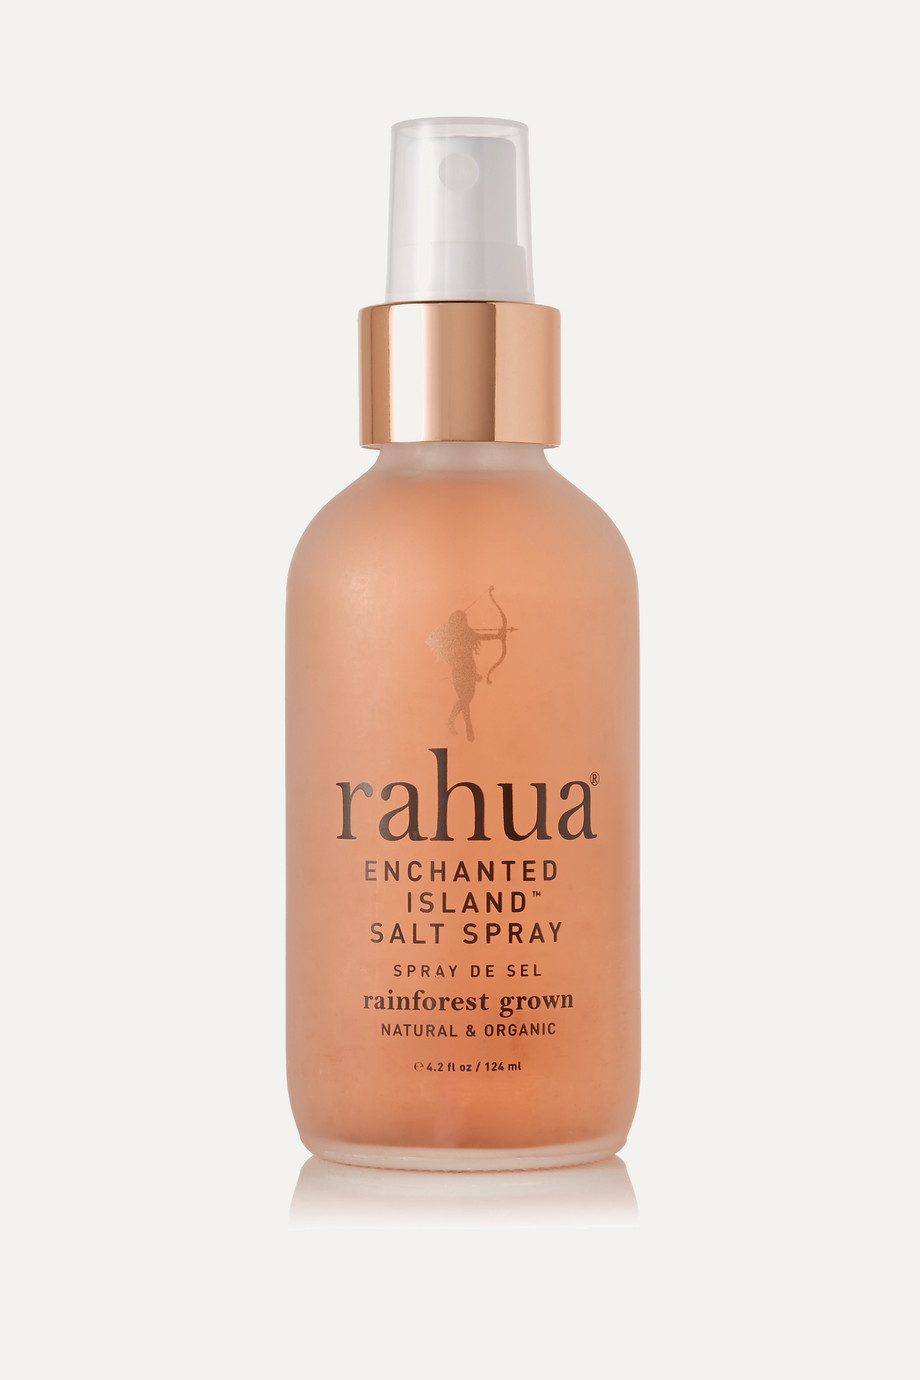 Rahua Enchanted Island Salt Spray, 124ml